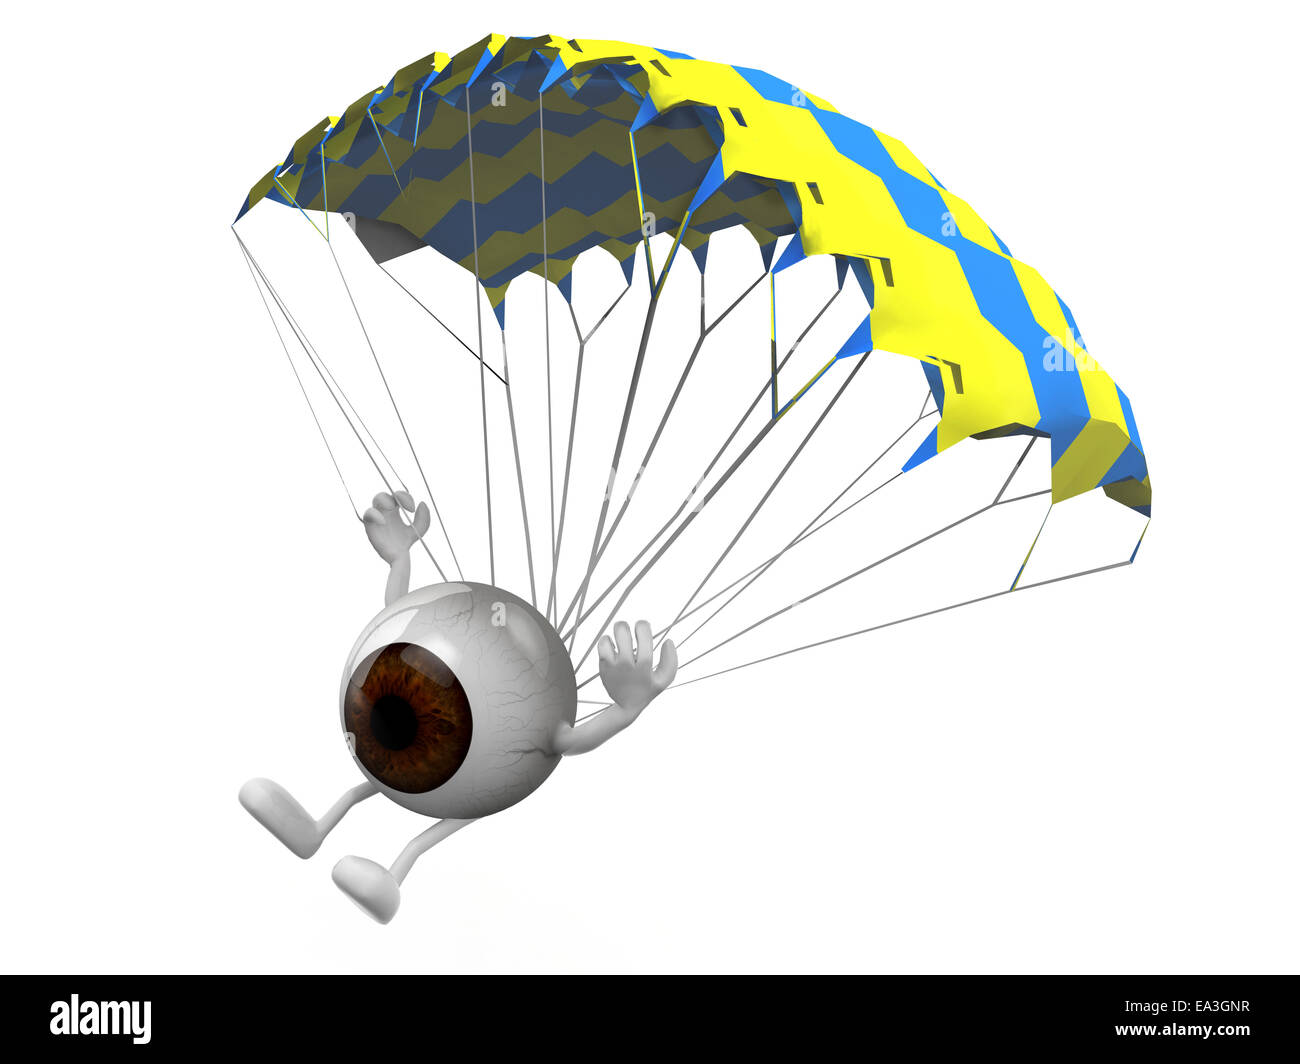 eyeball with arms and legs that is landing with parachute